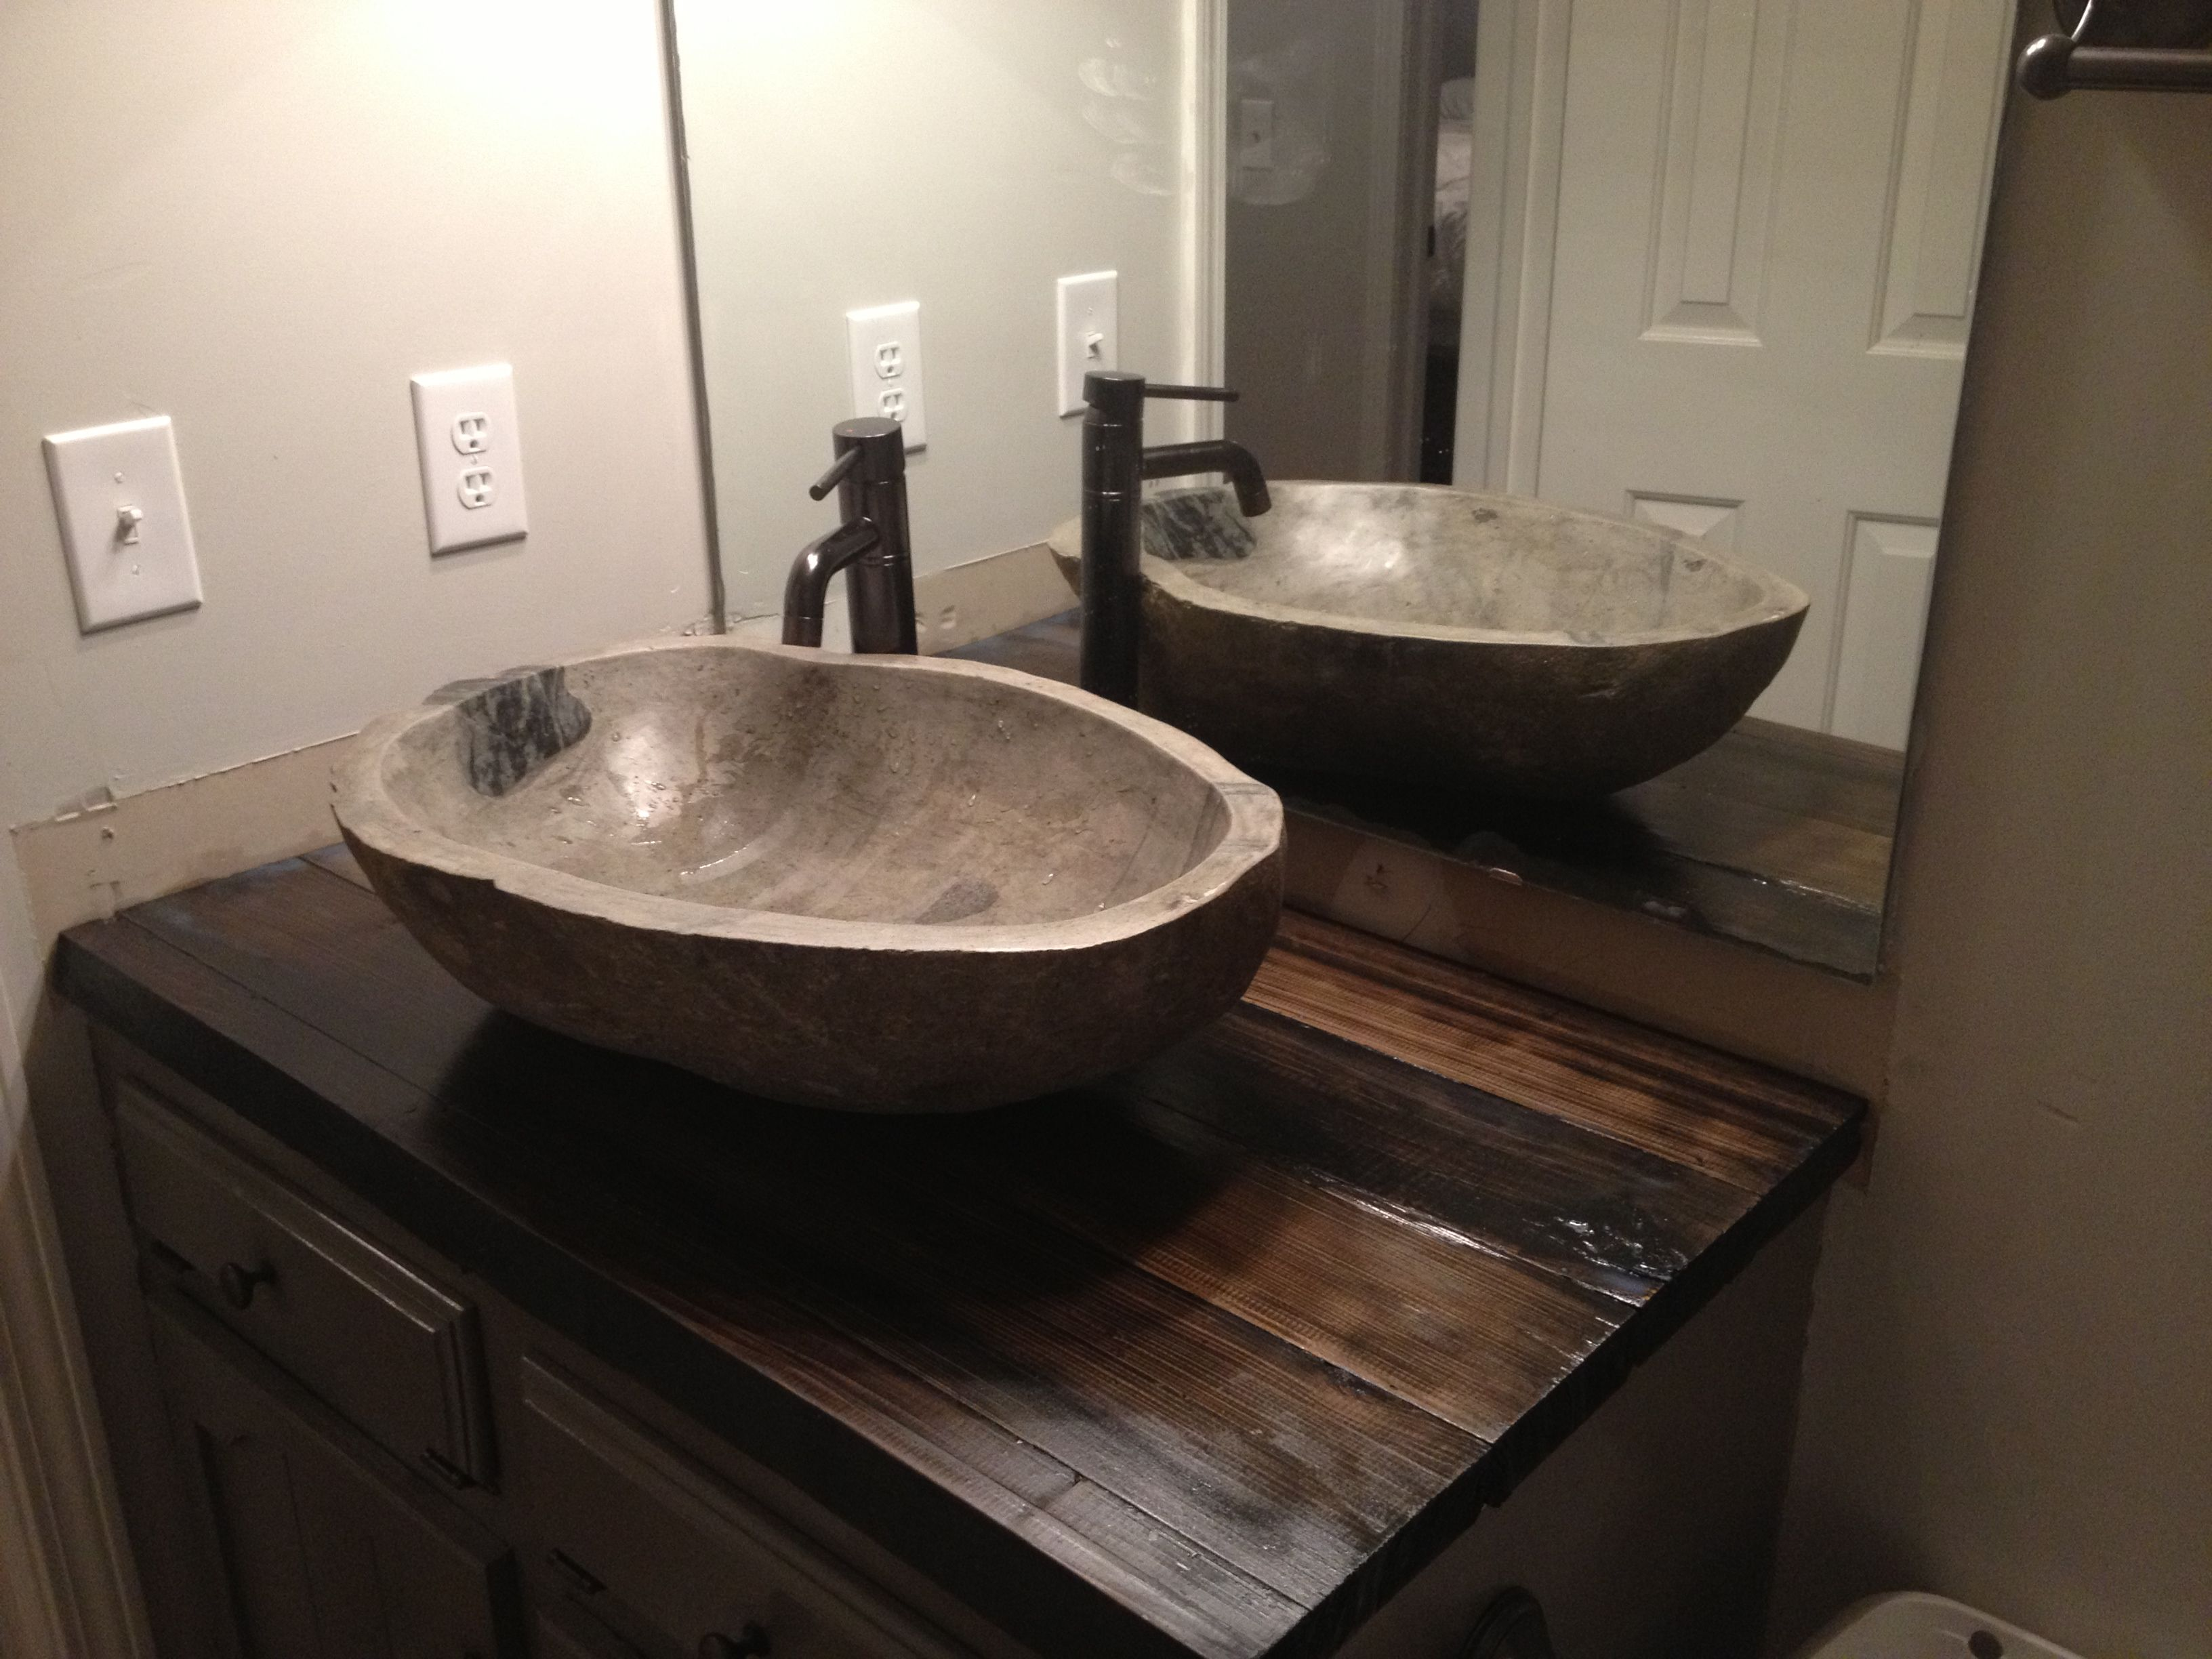 Stone Vessel sinks | Stone Vessel sinks real wood counter tops ...